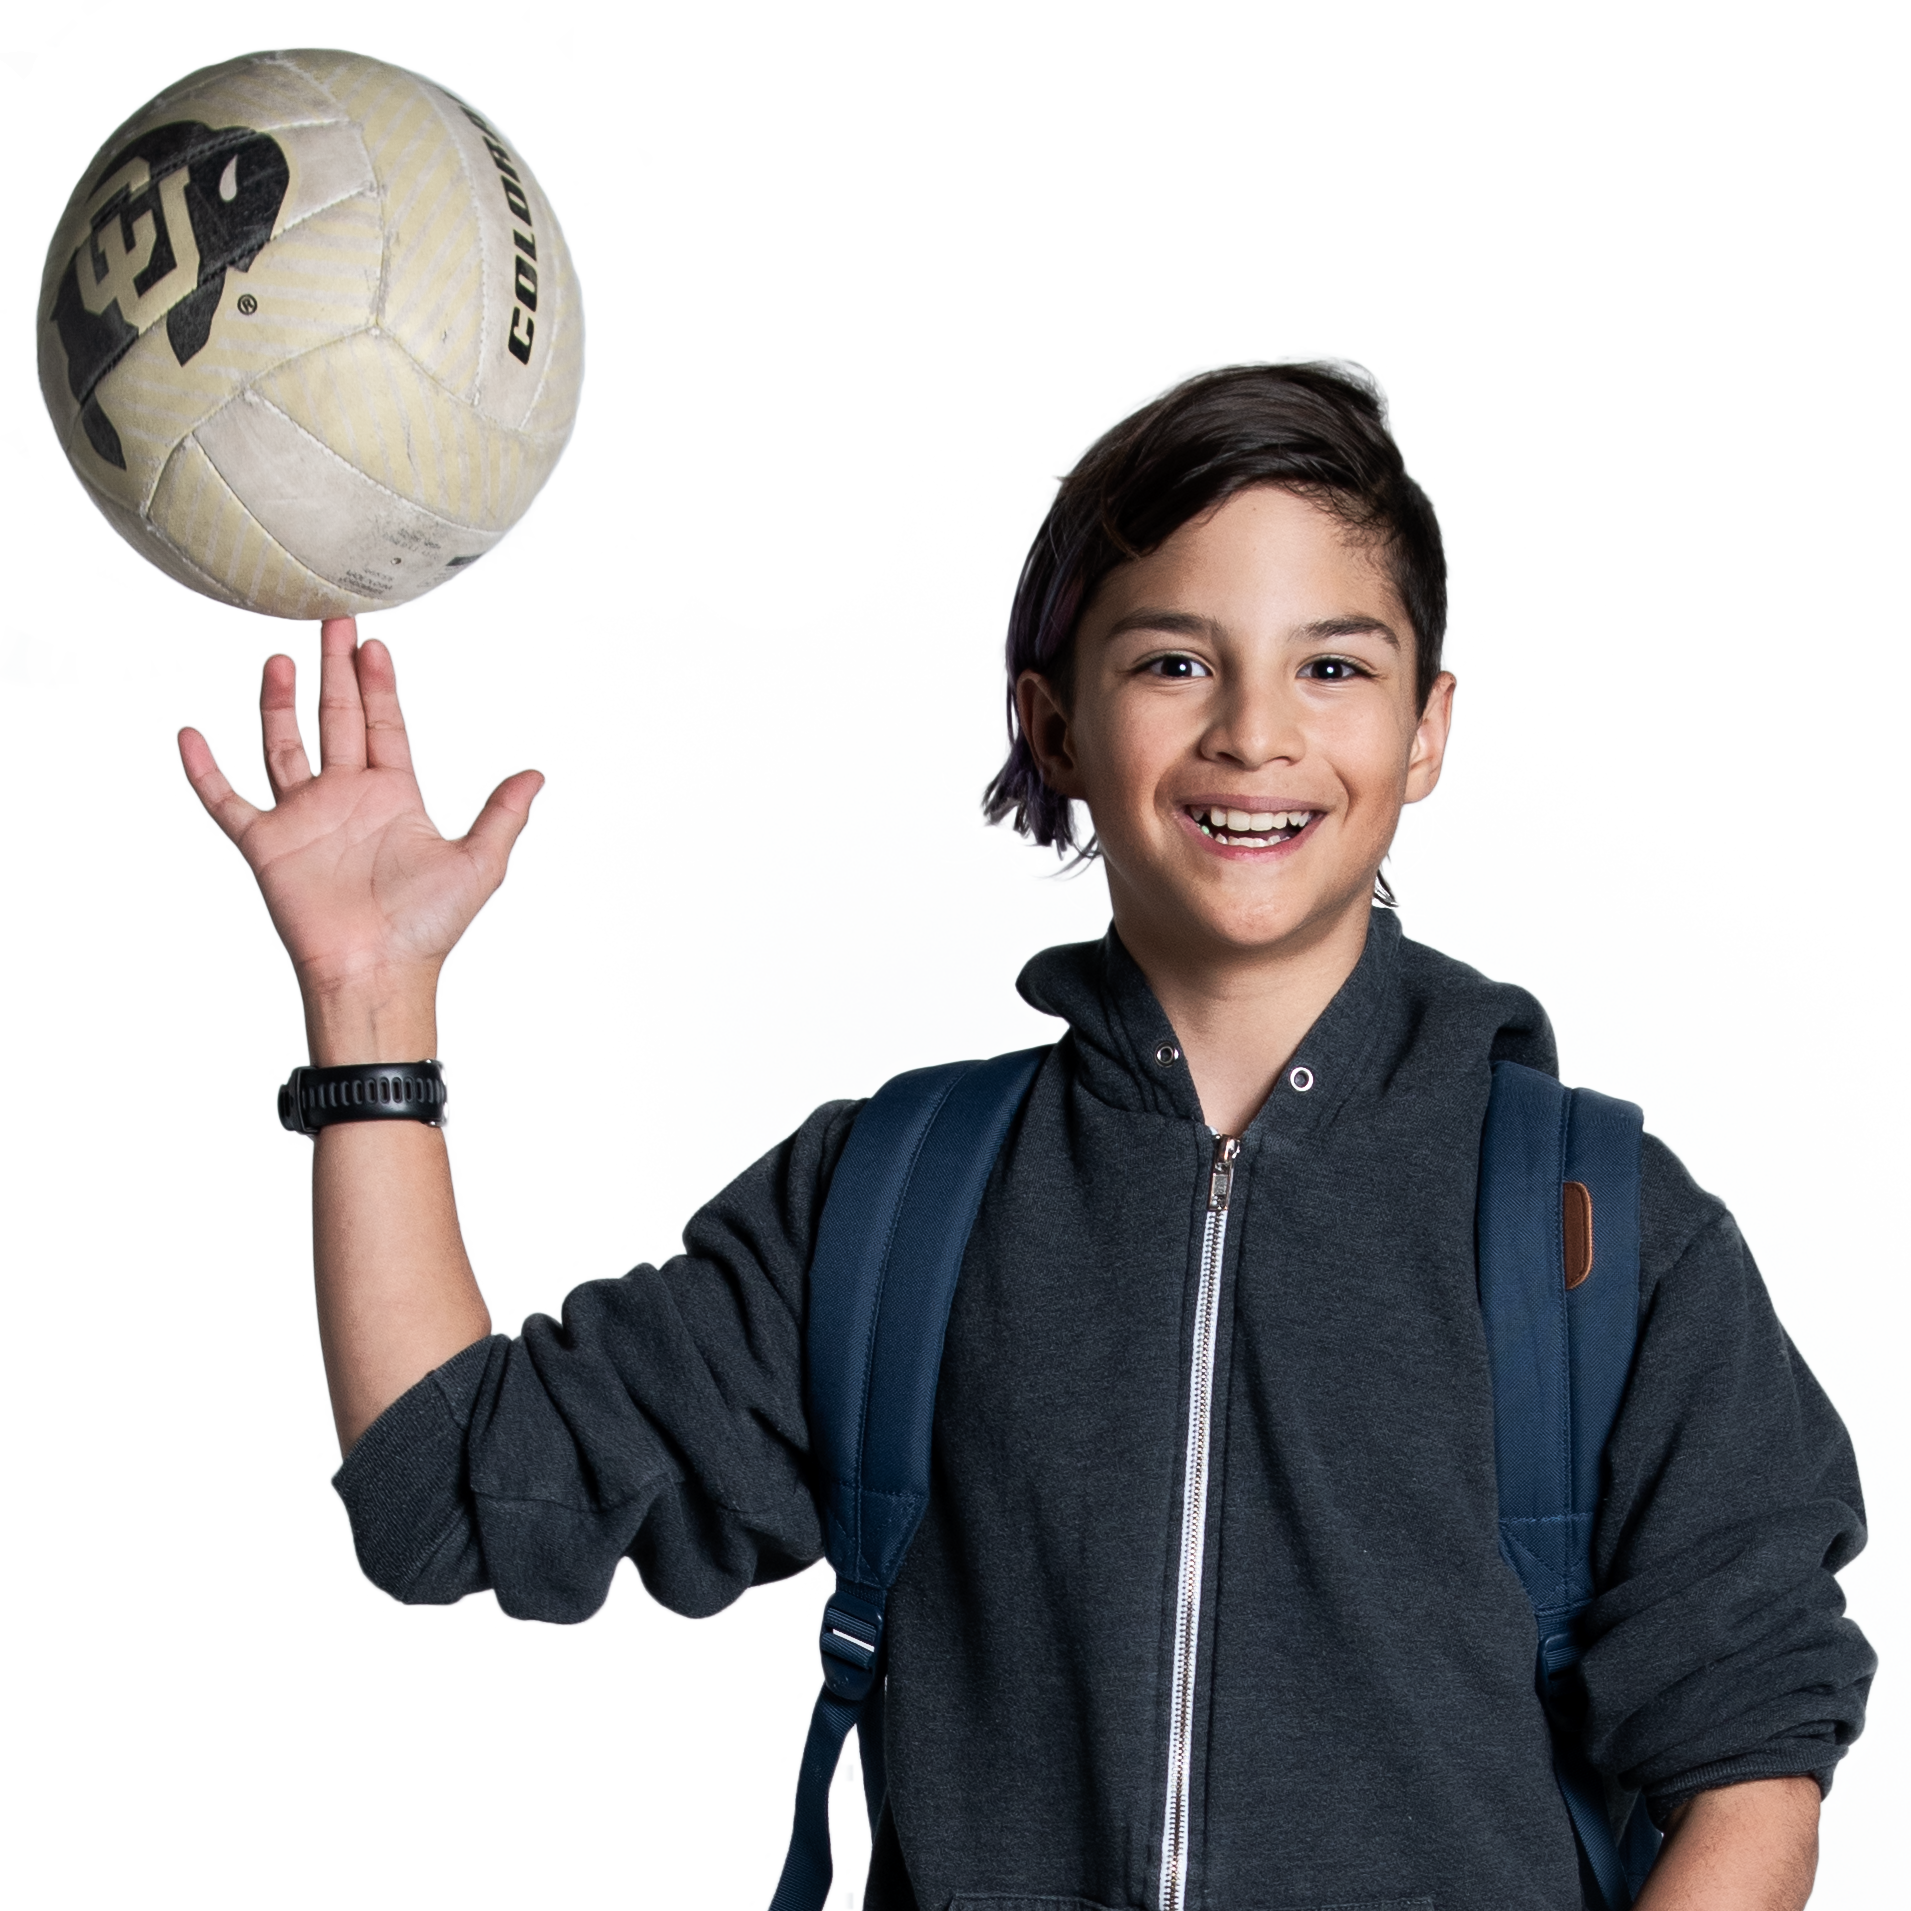 Nicco, a middle school student with a volleyball